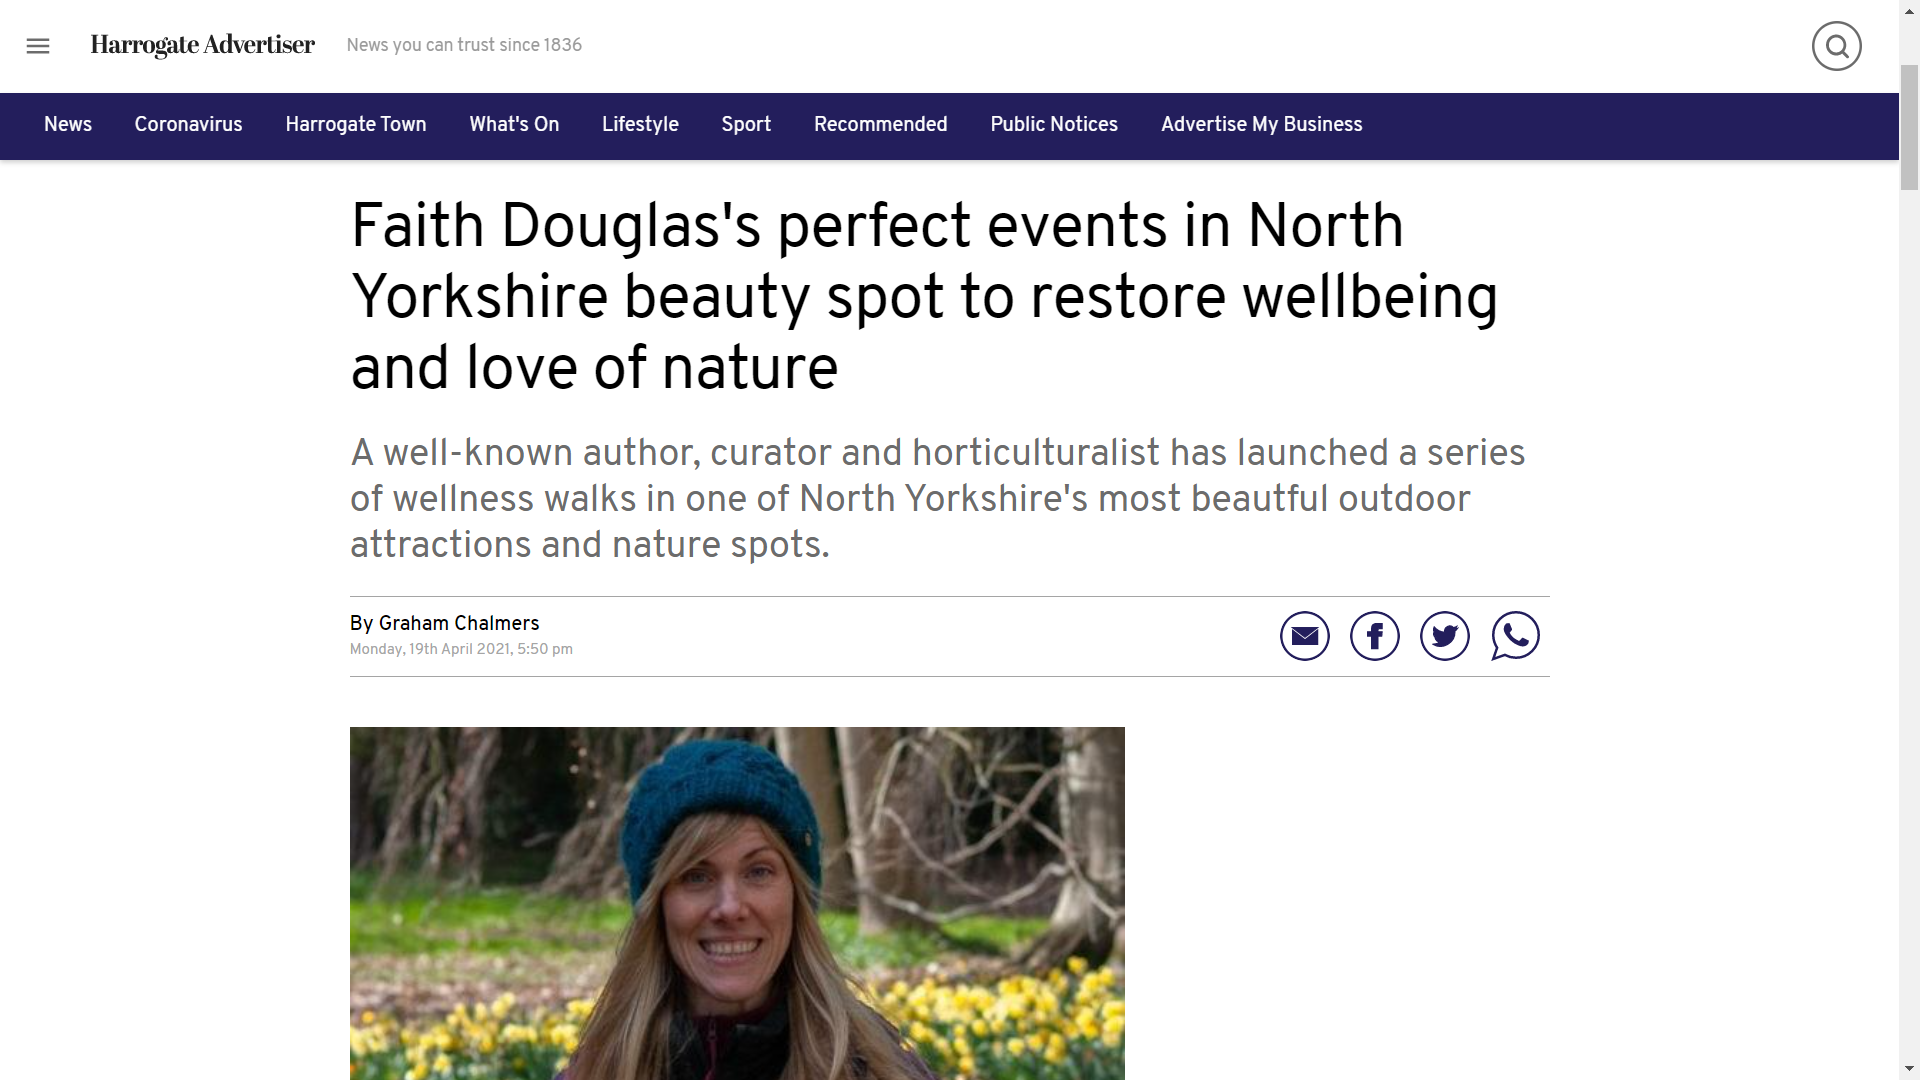 Faith Douglas's perfect events in North Yorkshire beauty spot to restore wellbeing and love of nature A well-known author, curator and horticulturalist has launched a series of wellness walks in one of North Yorkshire's most beautful outdoor attractions and nature spots. By Graham Chalmers Monday, 19th April 2021, 5:50 pm